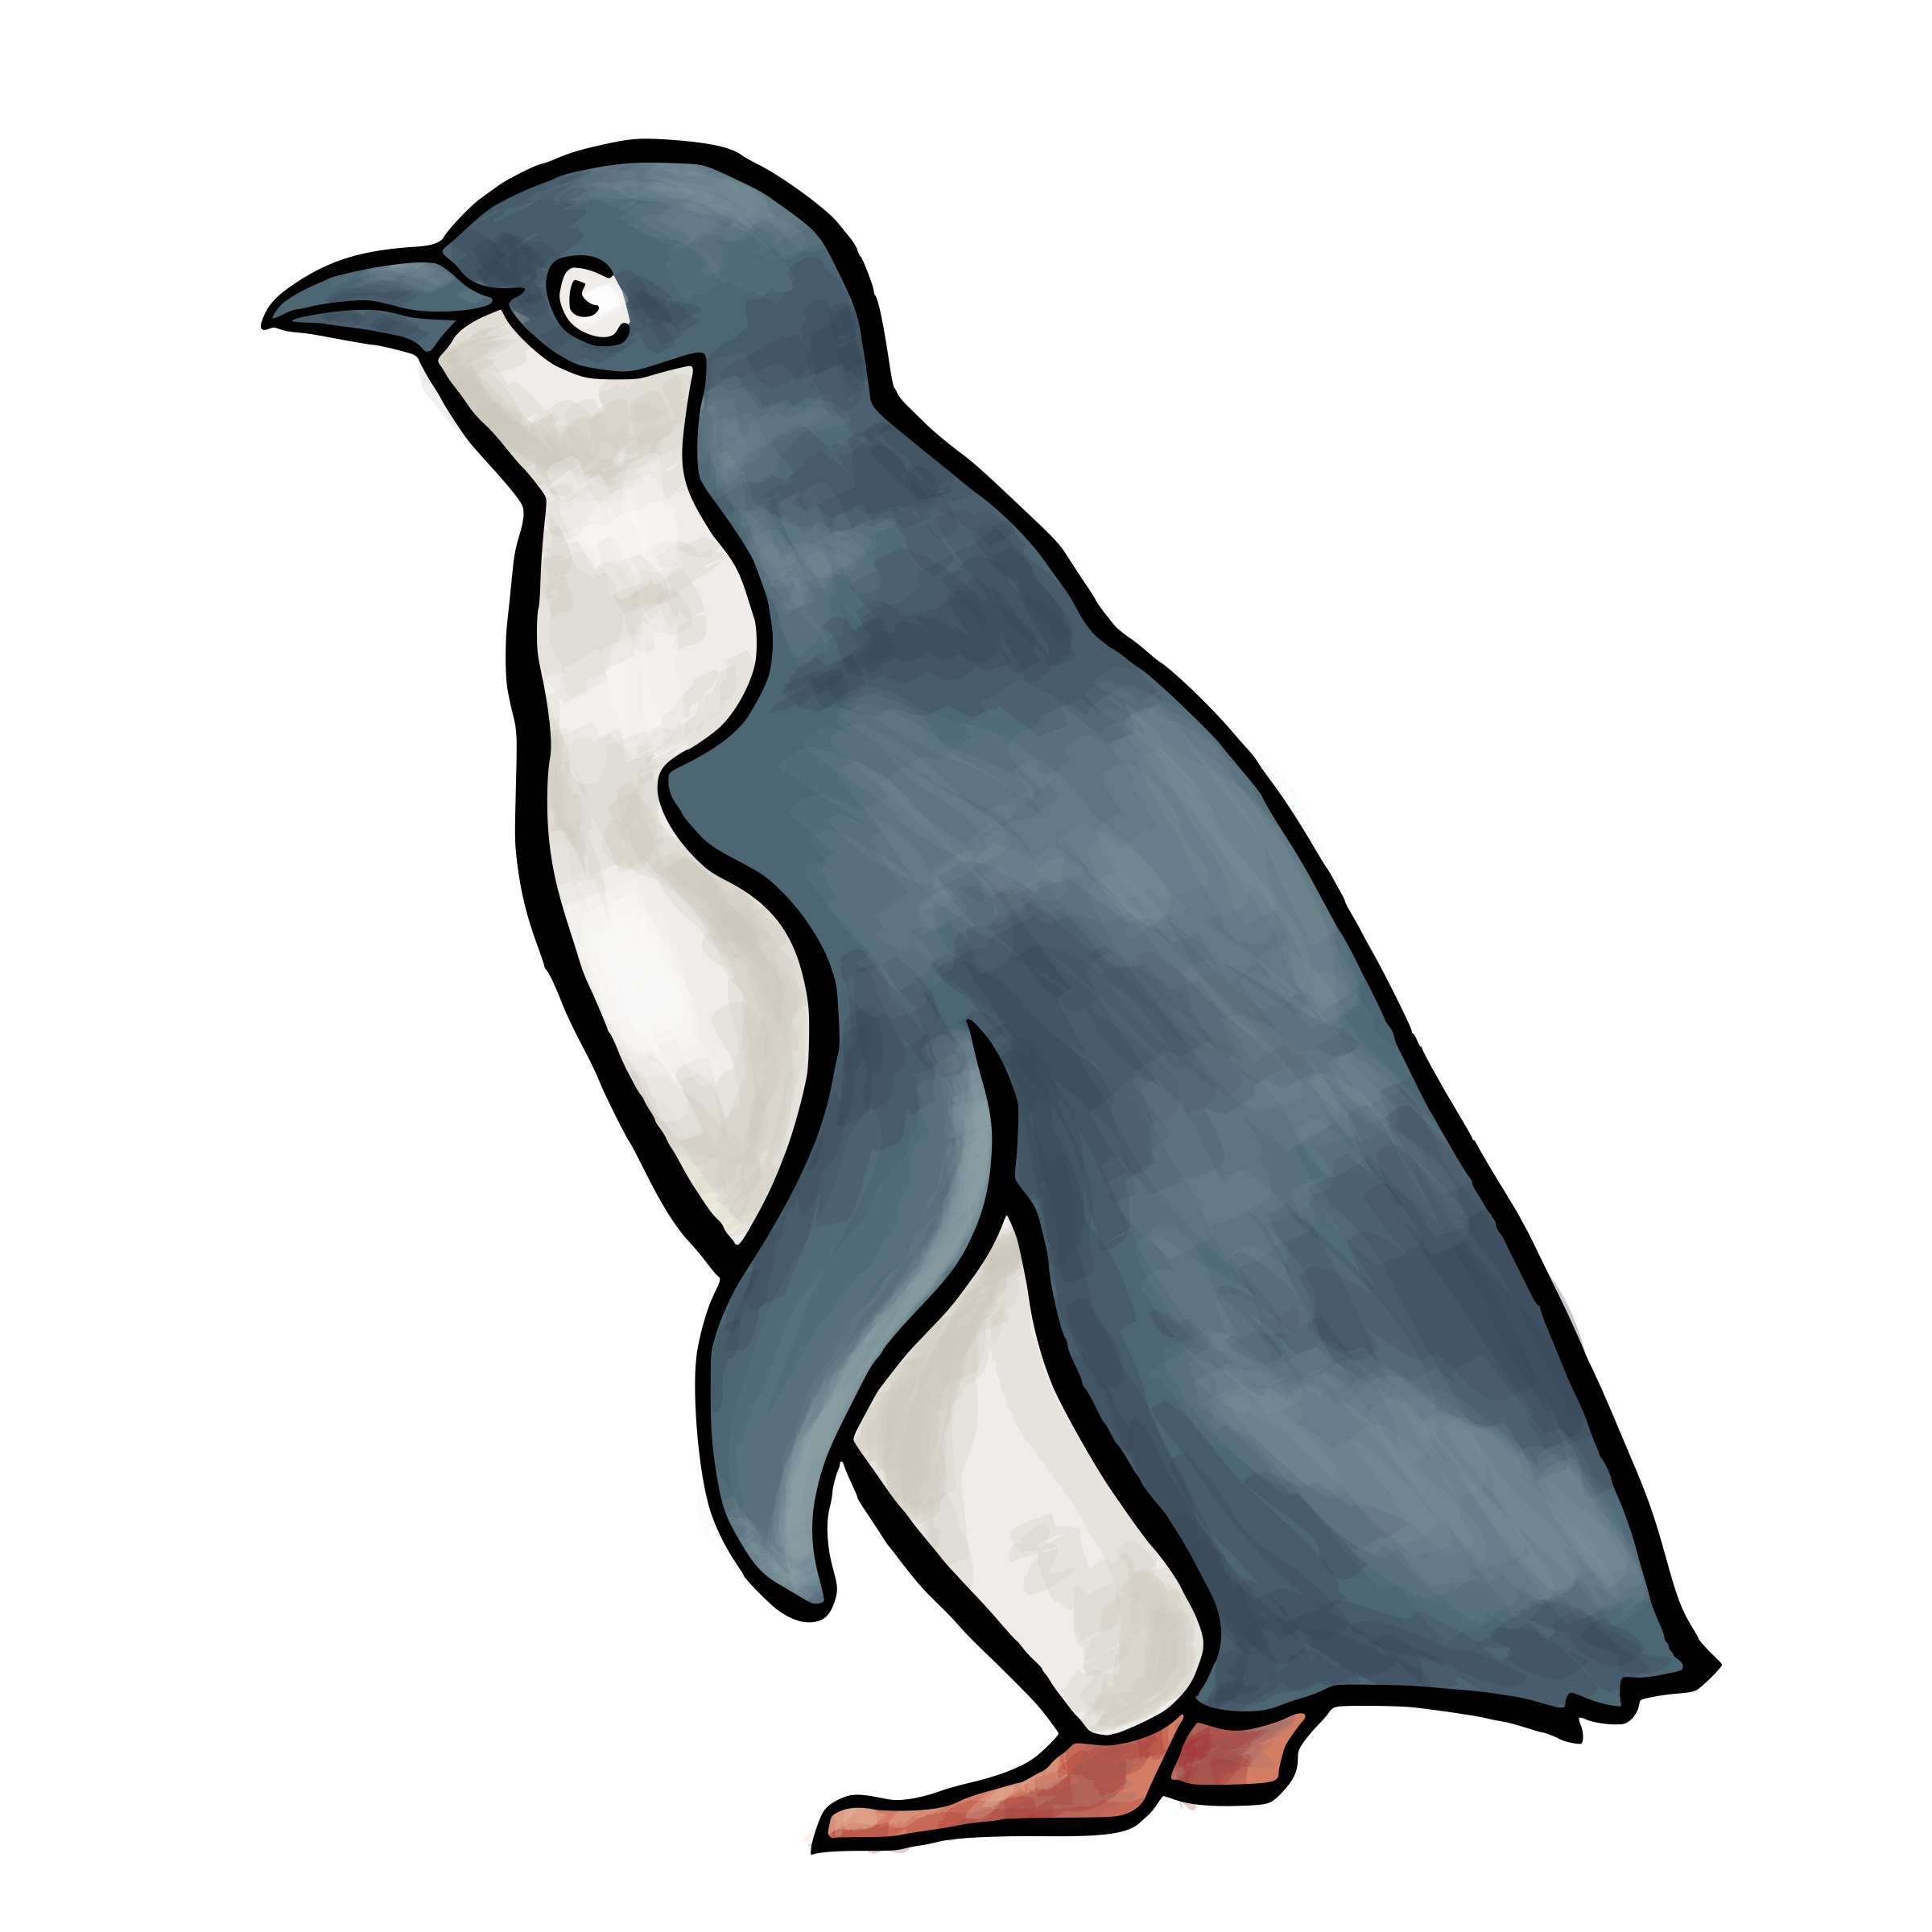 The LCA2010 Penguin, 'Blu' by karora